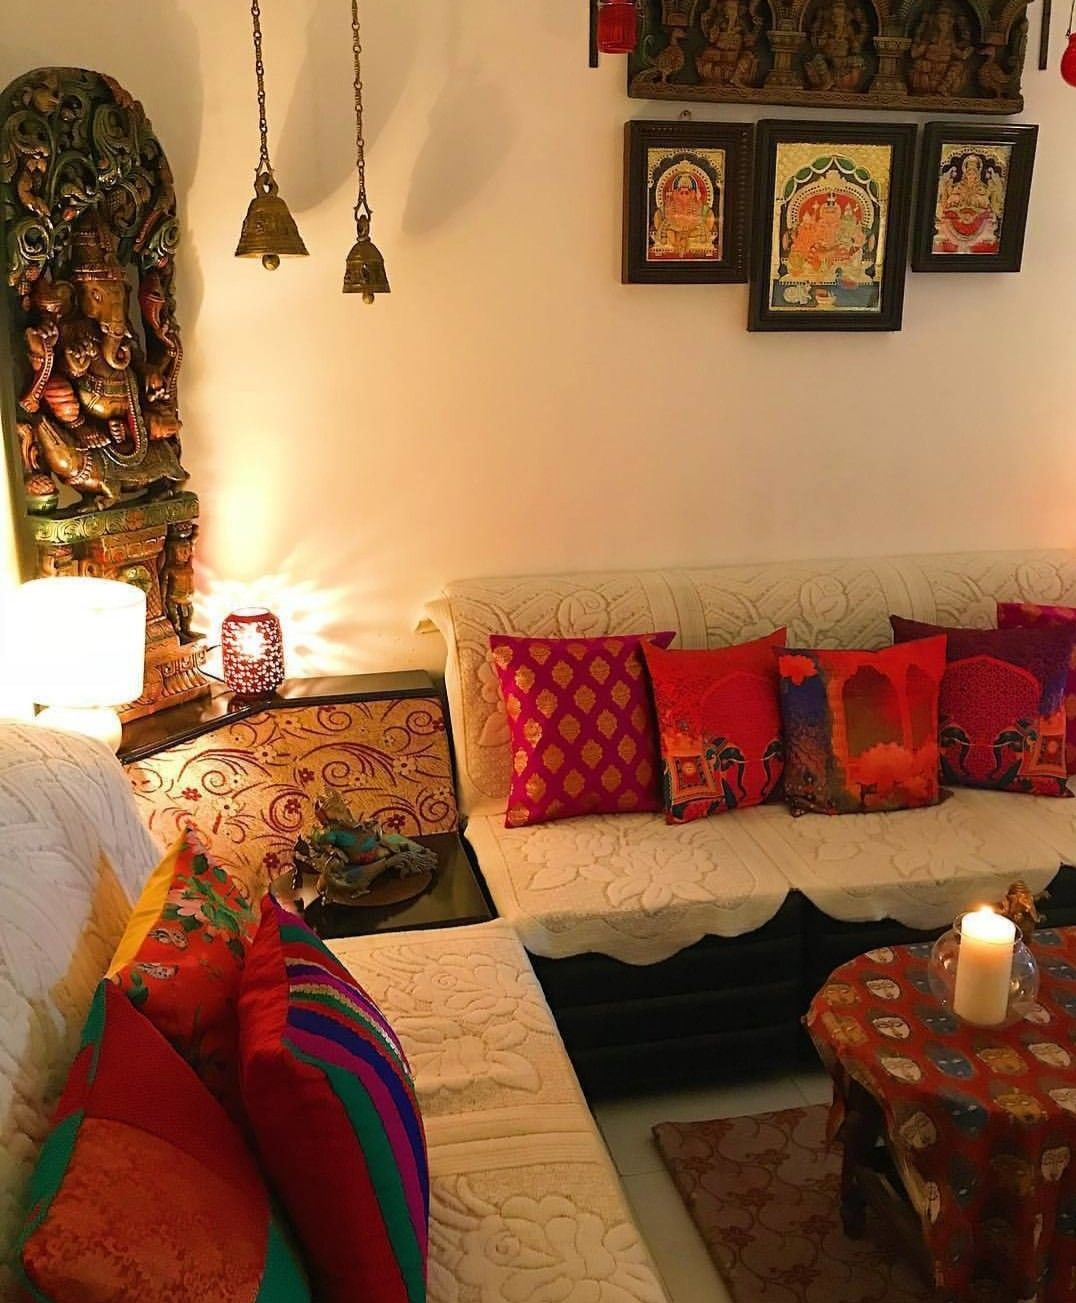 Saved by radhareddy garisa indian room decor asian living rooms interior also pin hathkargha on home in pinterest rh